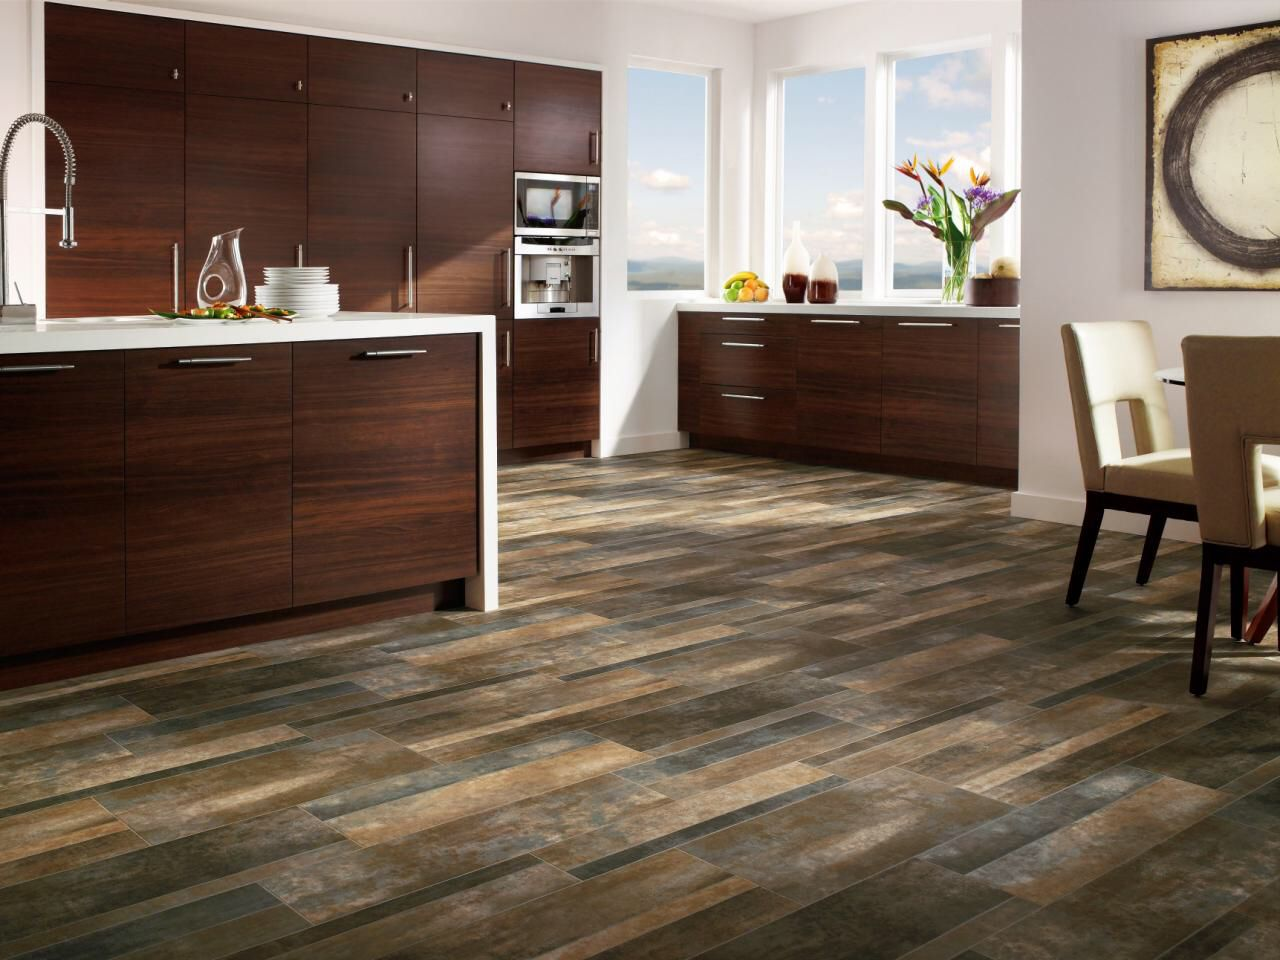 Beautiful Realistic Hard Wood Vinyl Flooring Available At Express - Vinyl flooring phoenix